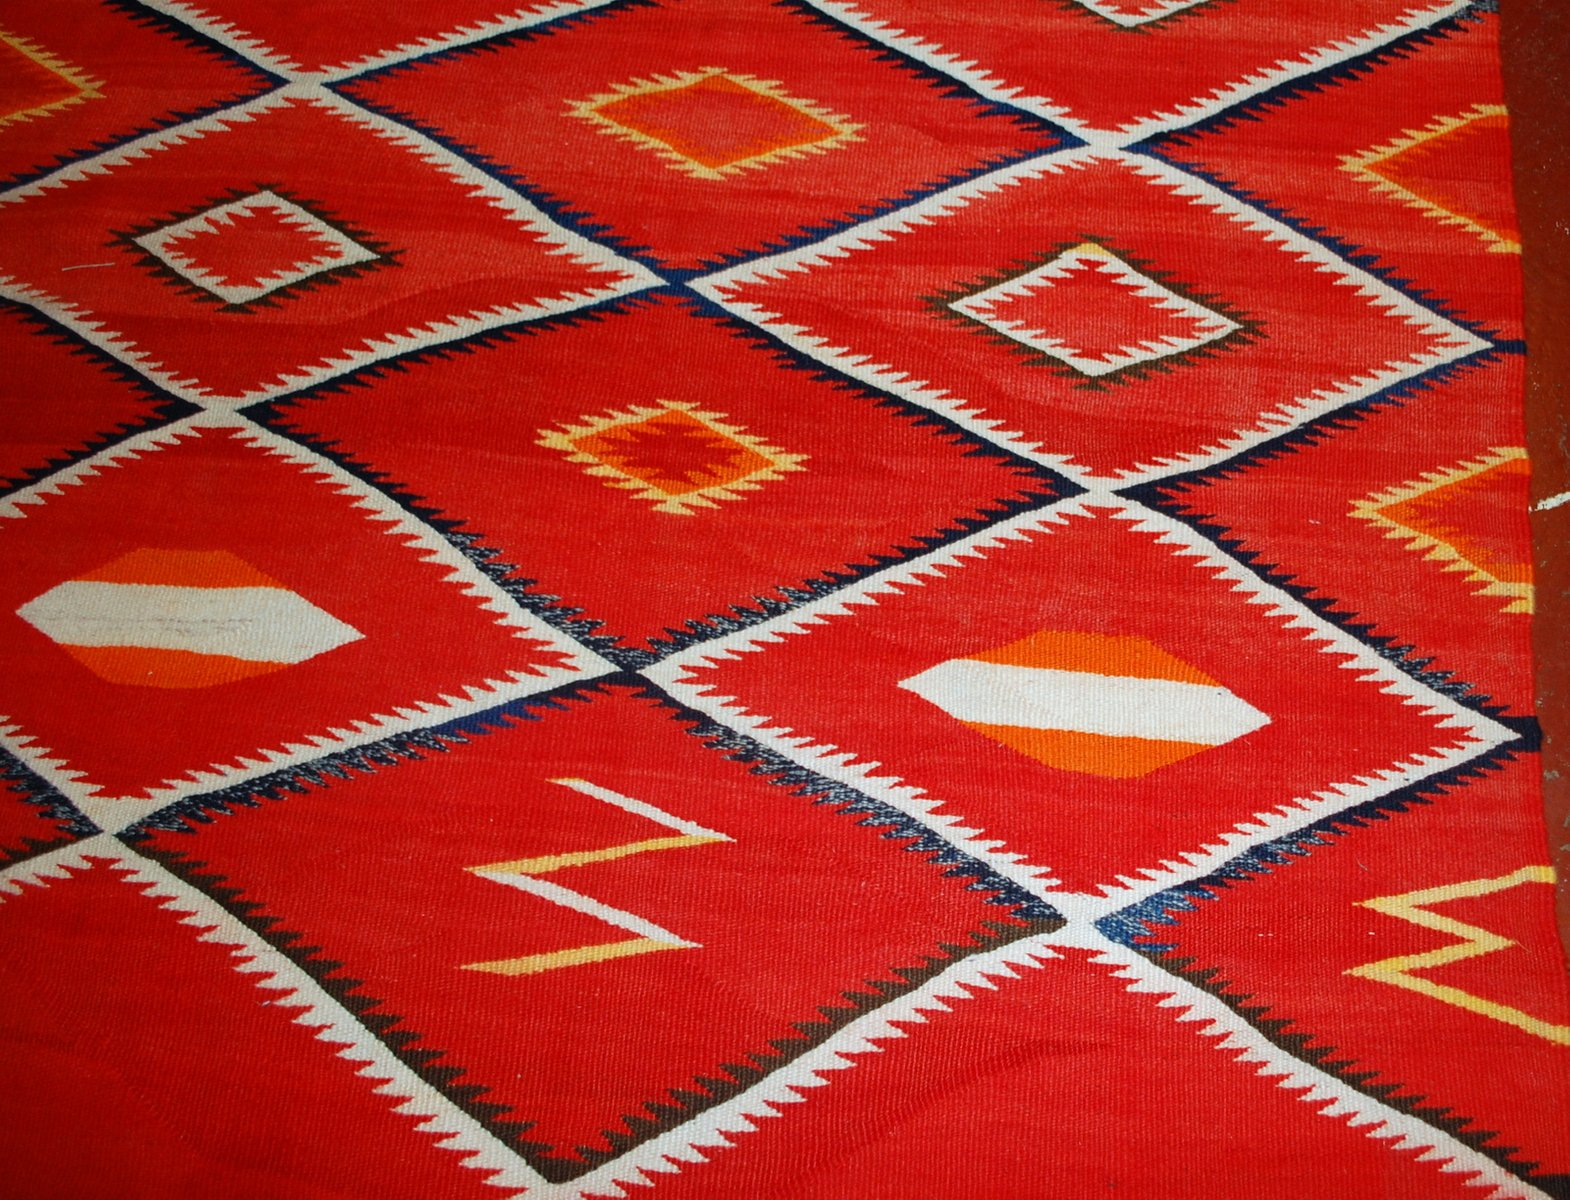 Antique Handmade Native American Navajo Rug, 1870s for sale at Pamono